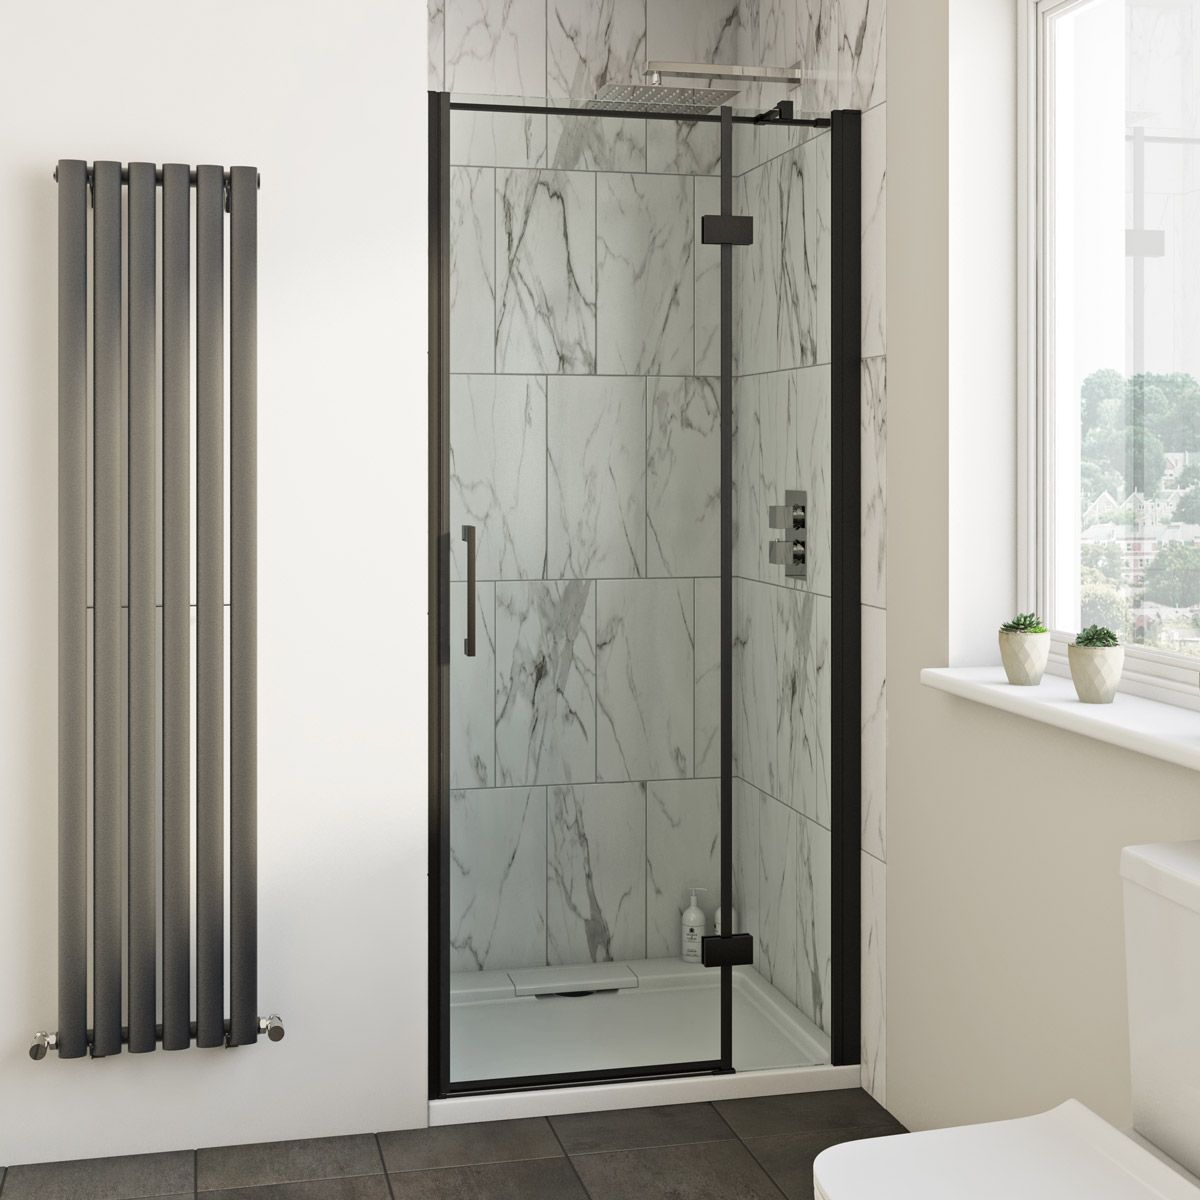 Mode Cooper Black Hinged Easy Clean Shower Door In 2020 Easy Clean Shower Shower Doors Clean Shower Doors